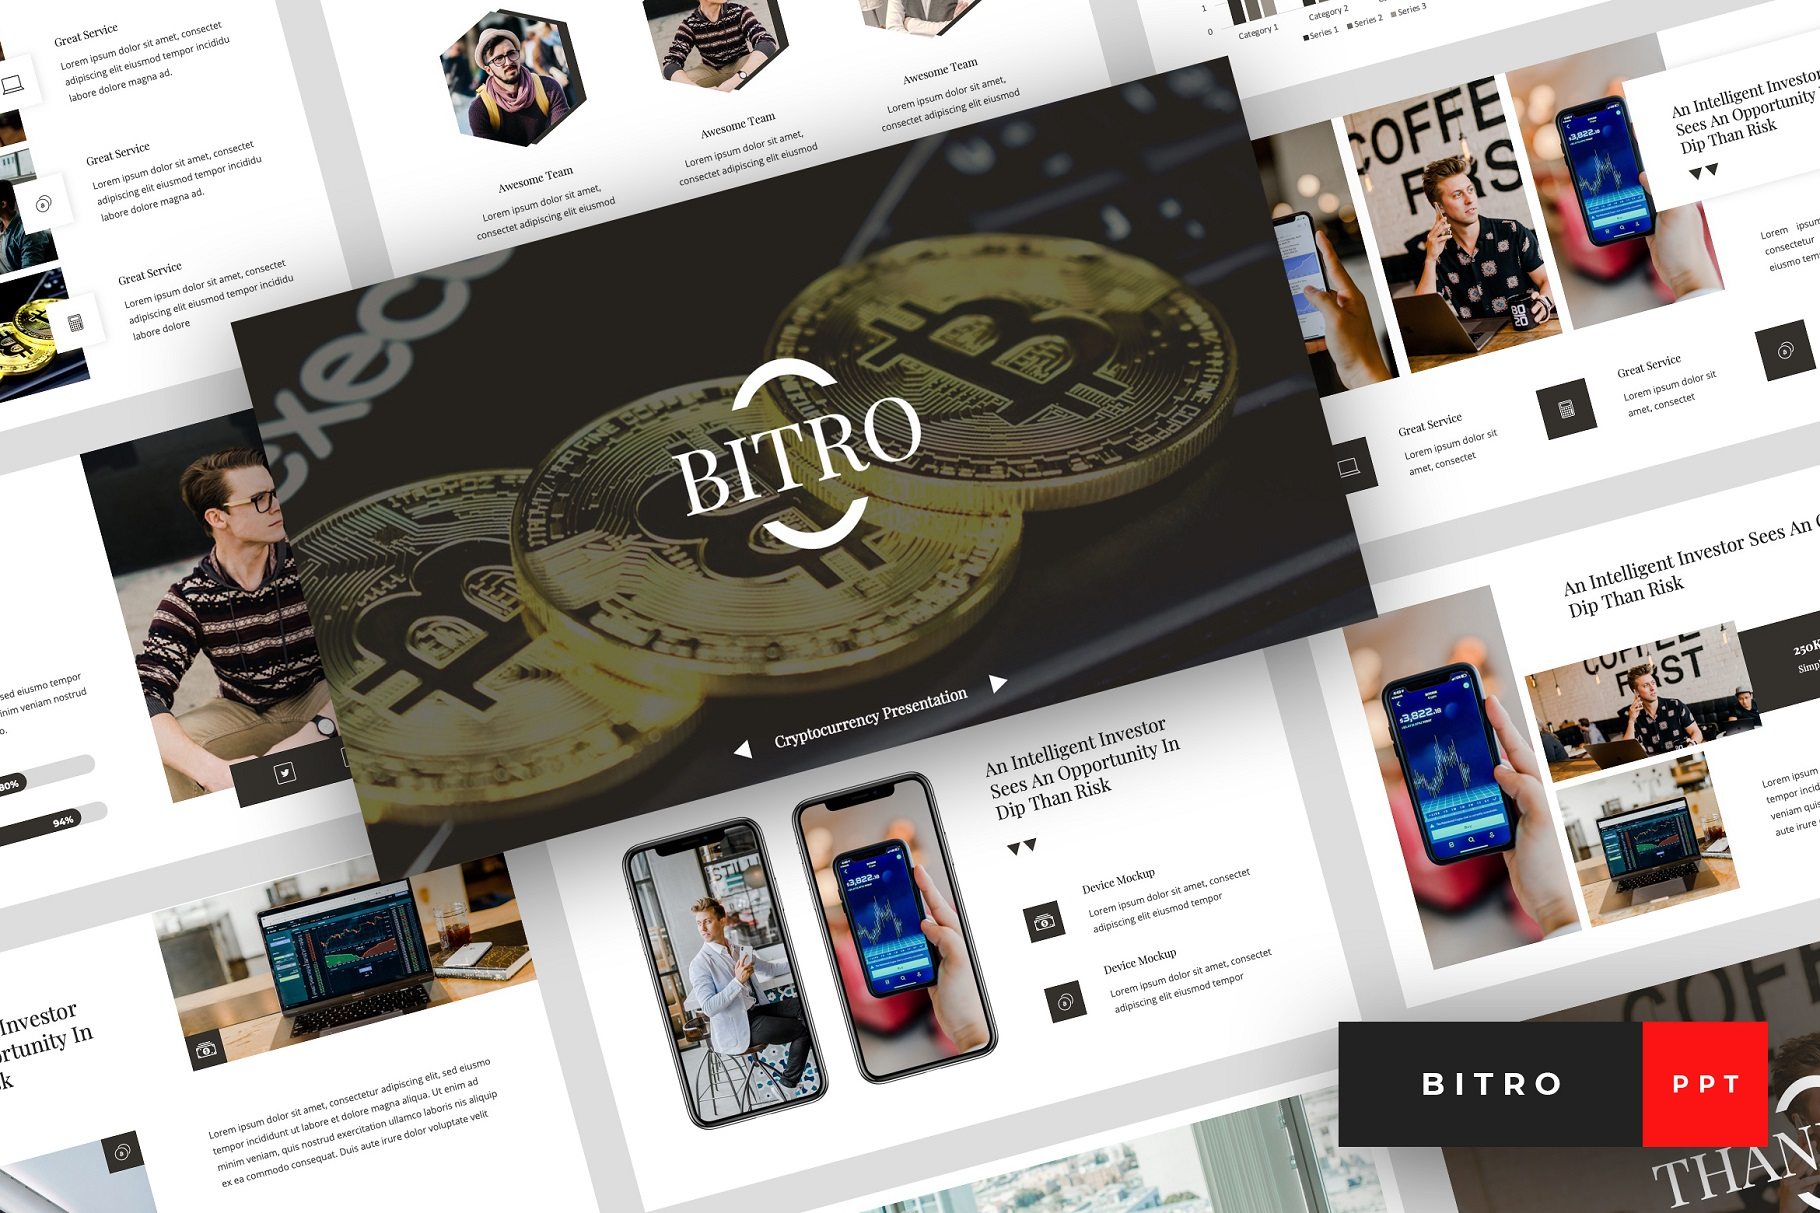 Bitro - Criptocurrency PowerPoint Template example image 1